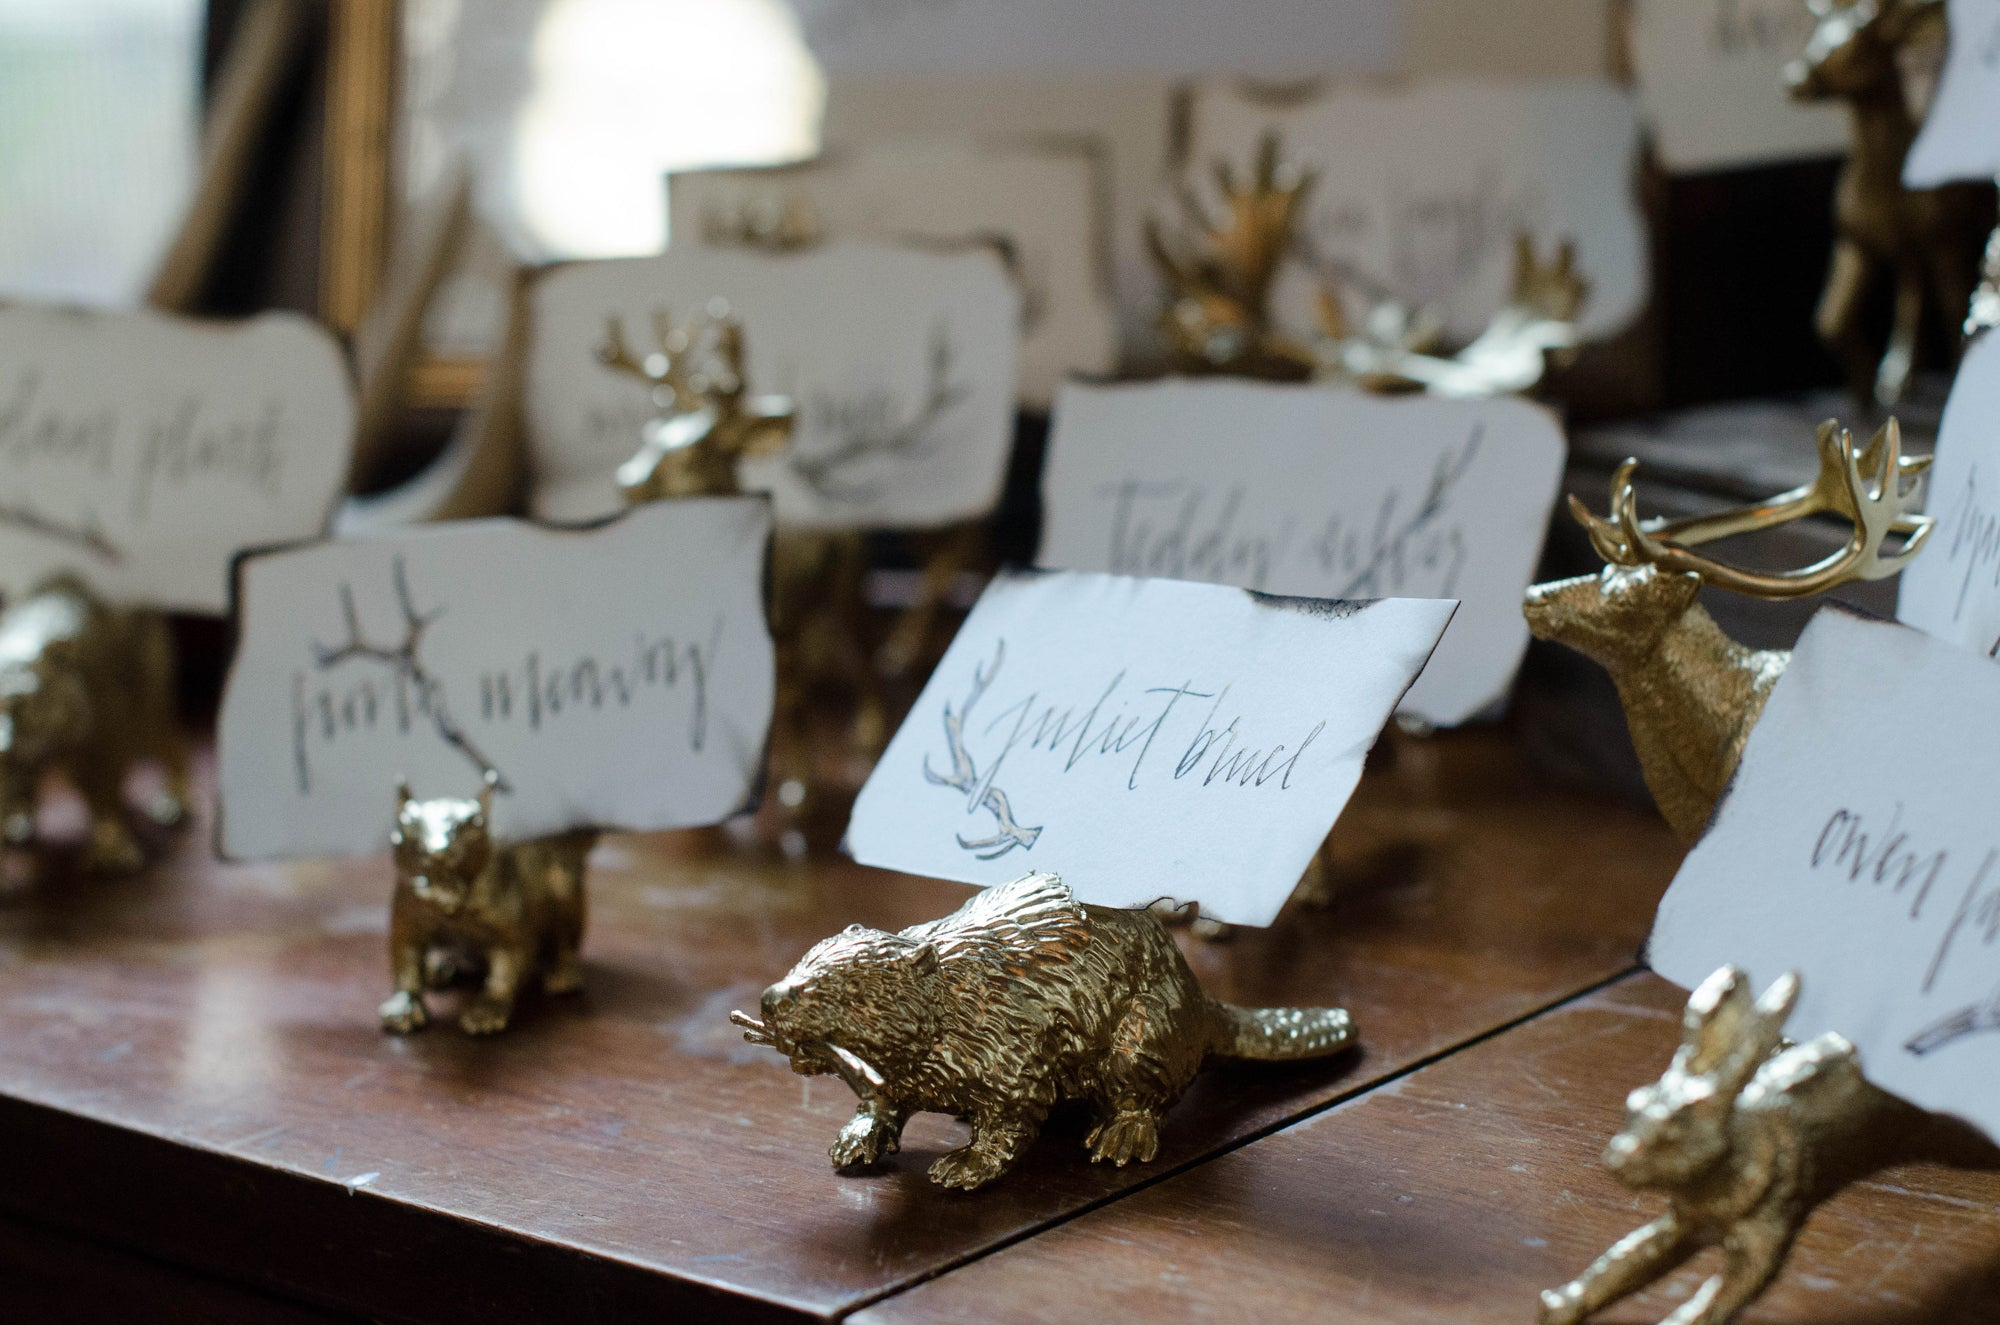 These gold animal place card seating card holders with hand lettered calligraphy are perfect for a rustic woodland wedding and so cute for guests to take home as a gift!